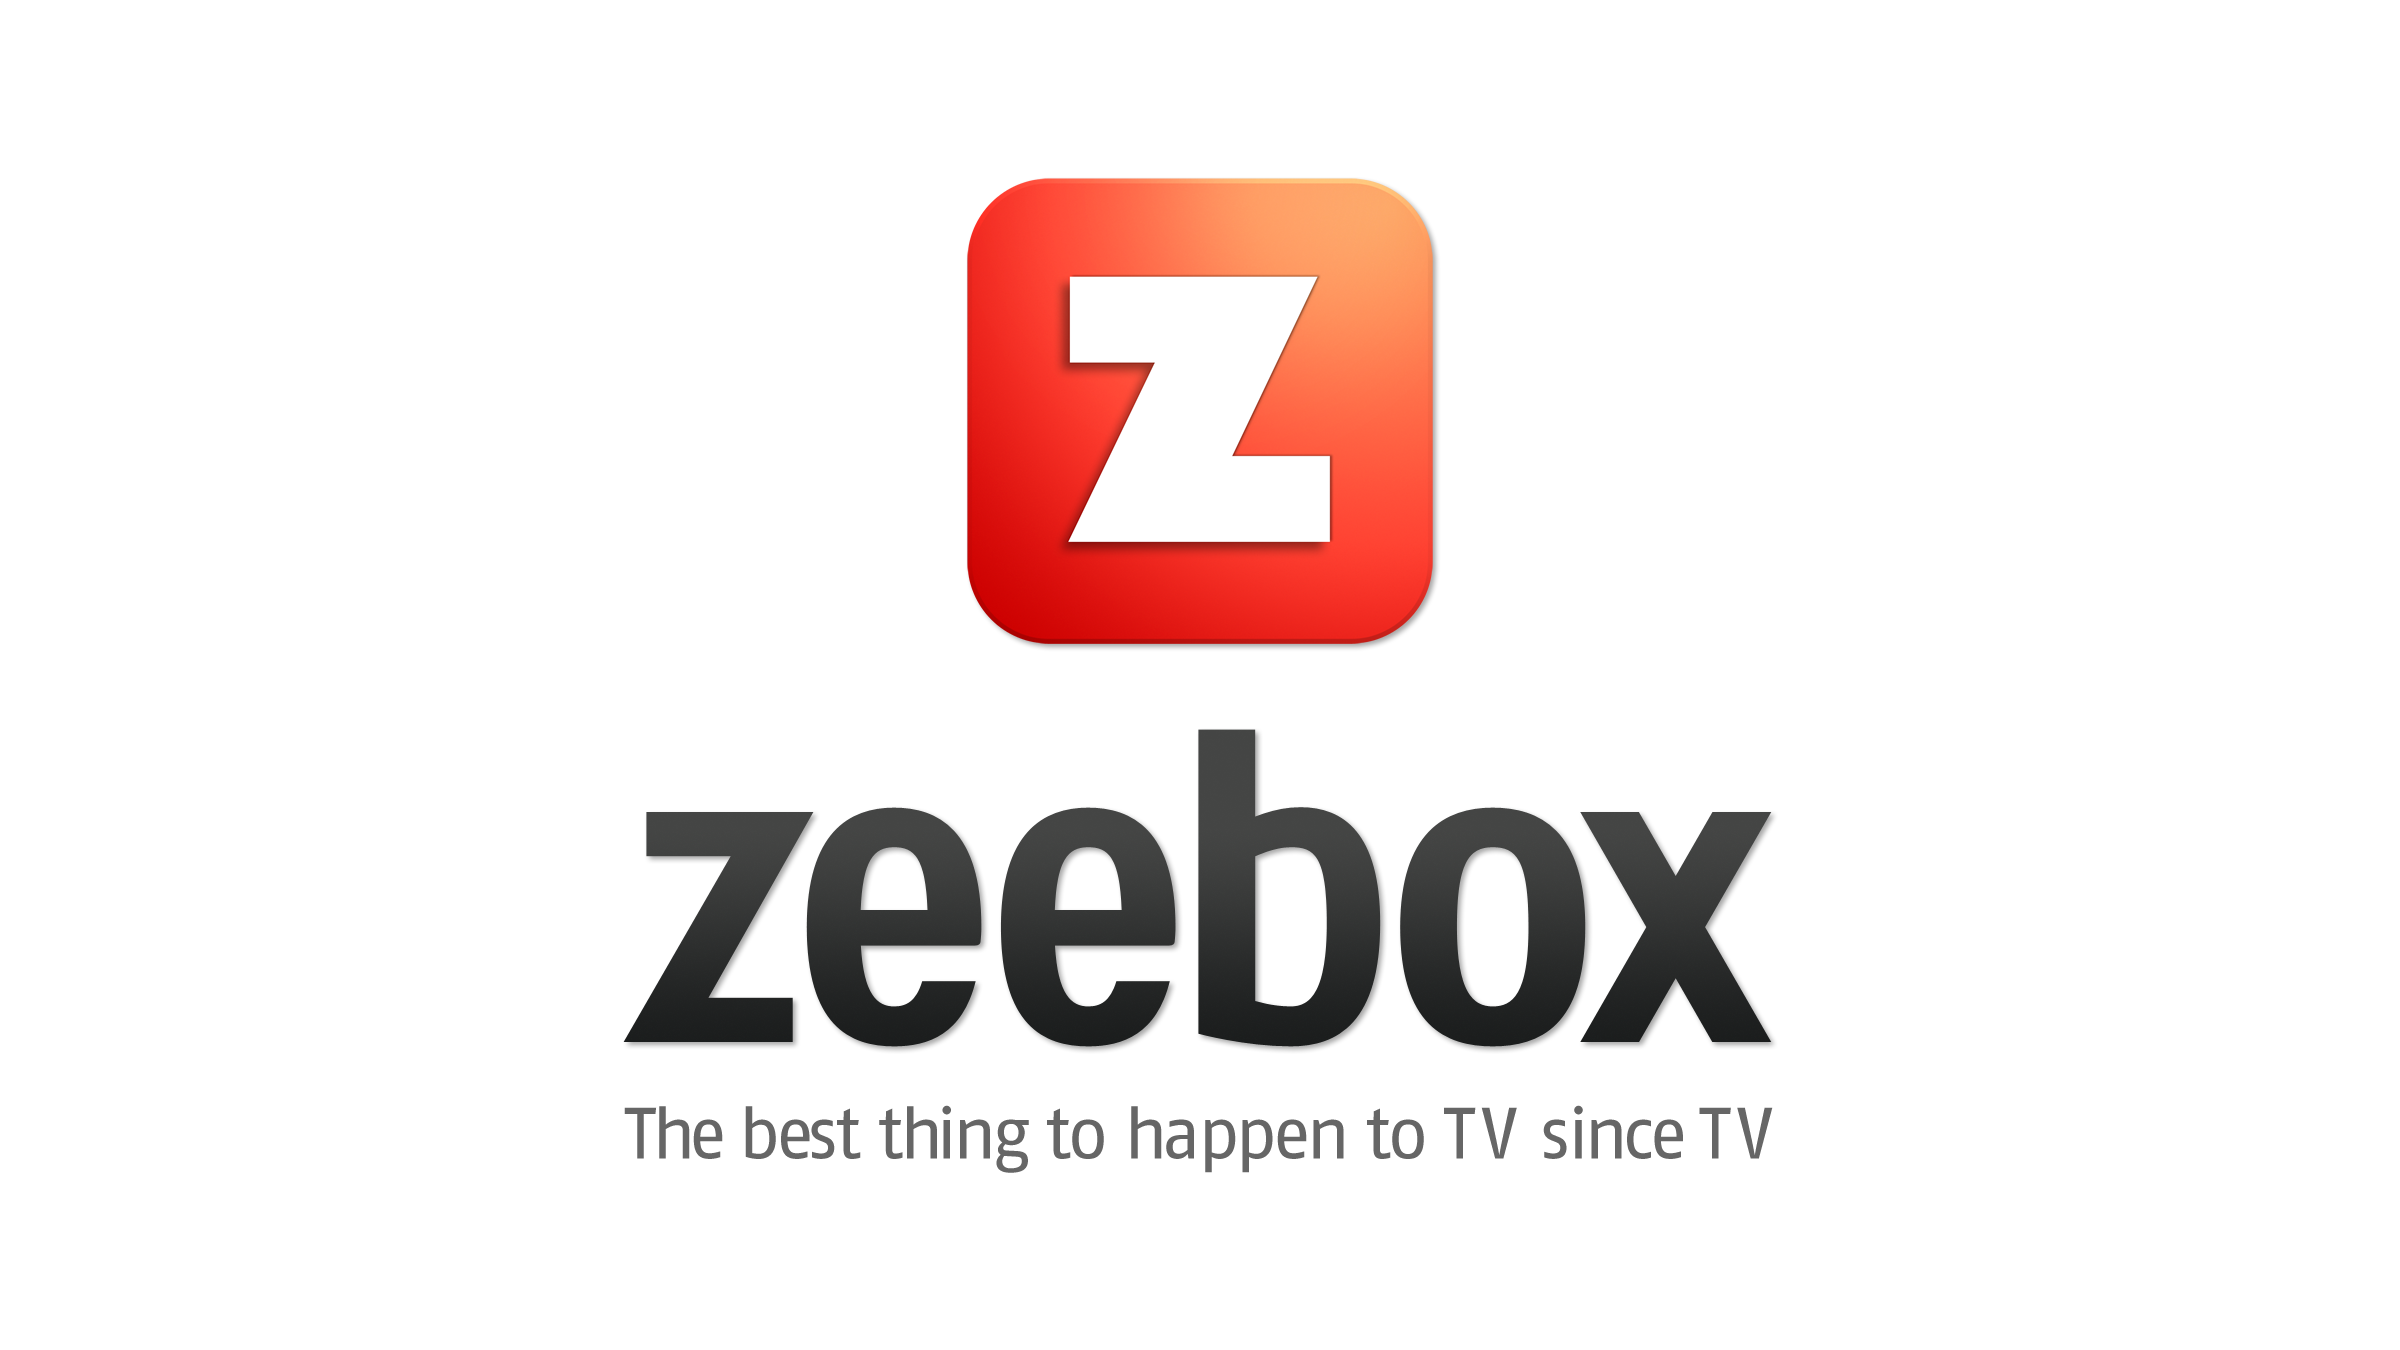 Zeebox - The future of TV - Logo